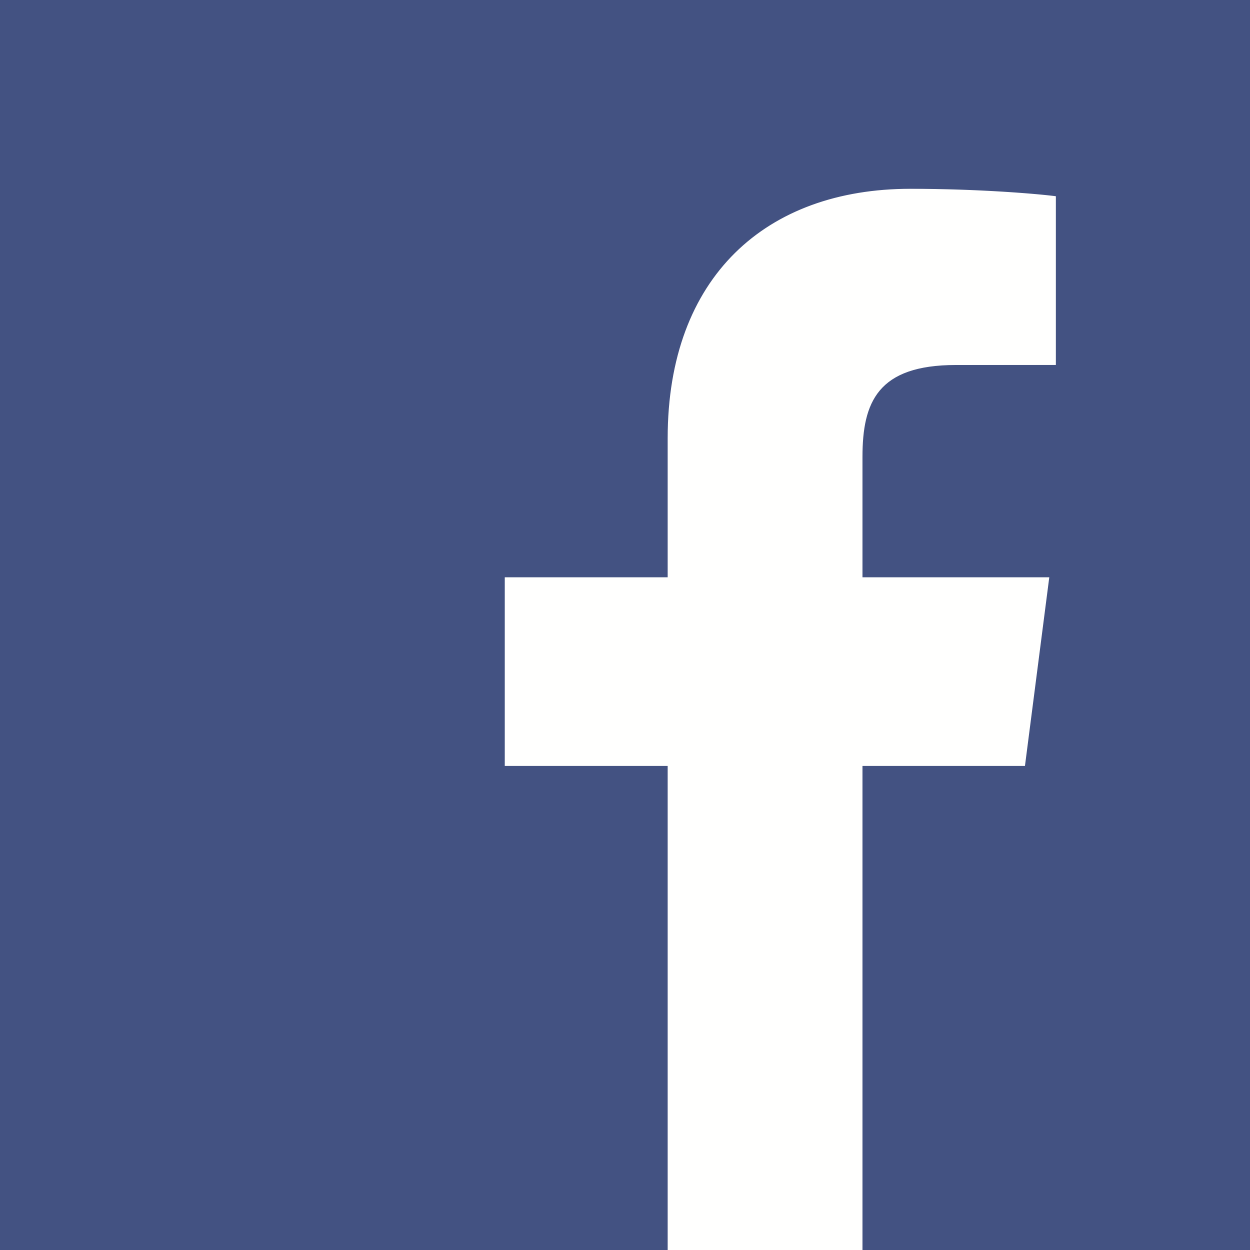 logo-facebook-eventloc.png